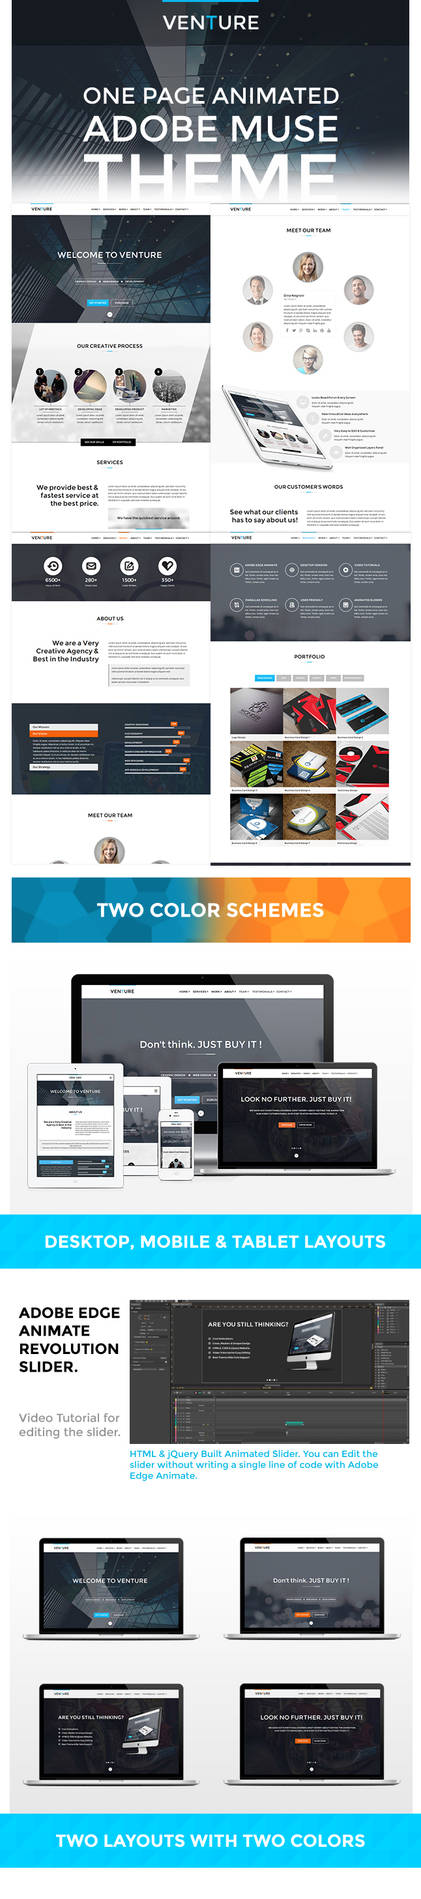 Venutre: Adobe Muse Animated Website Template by VMSDesigns on